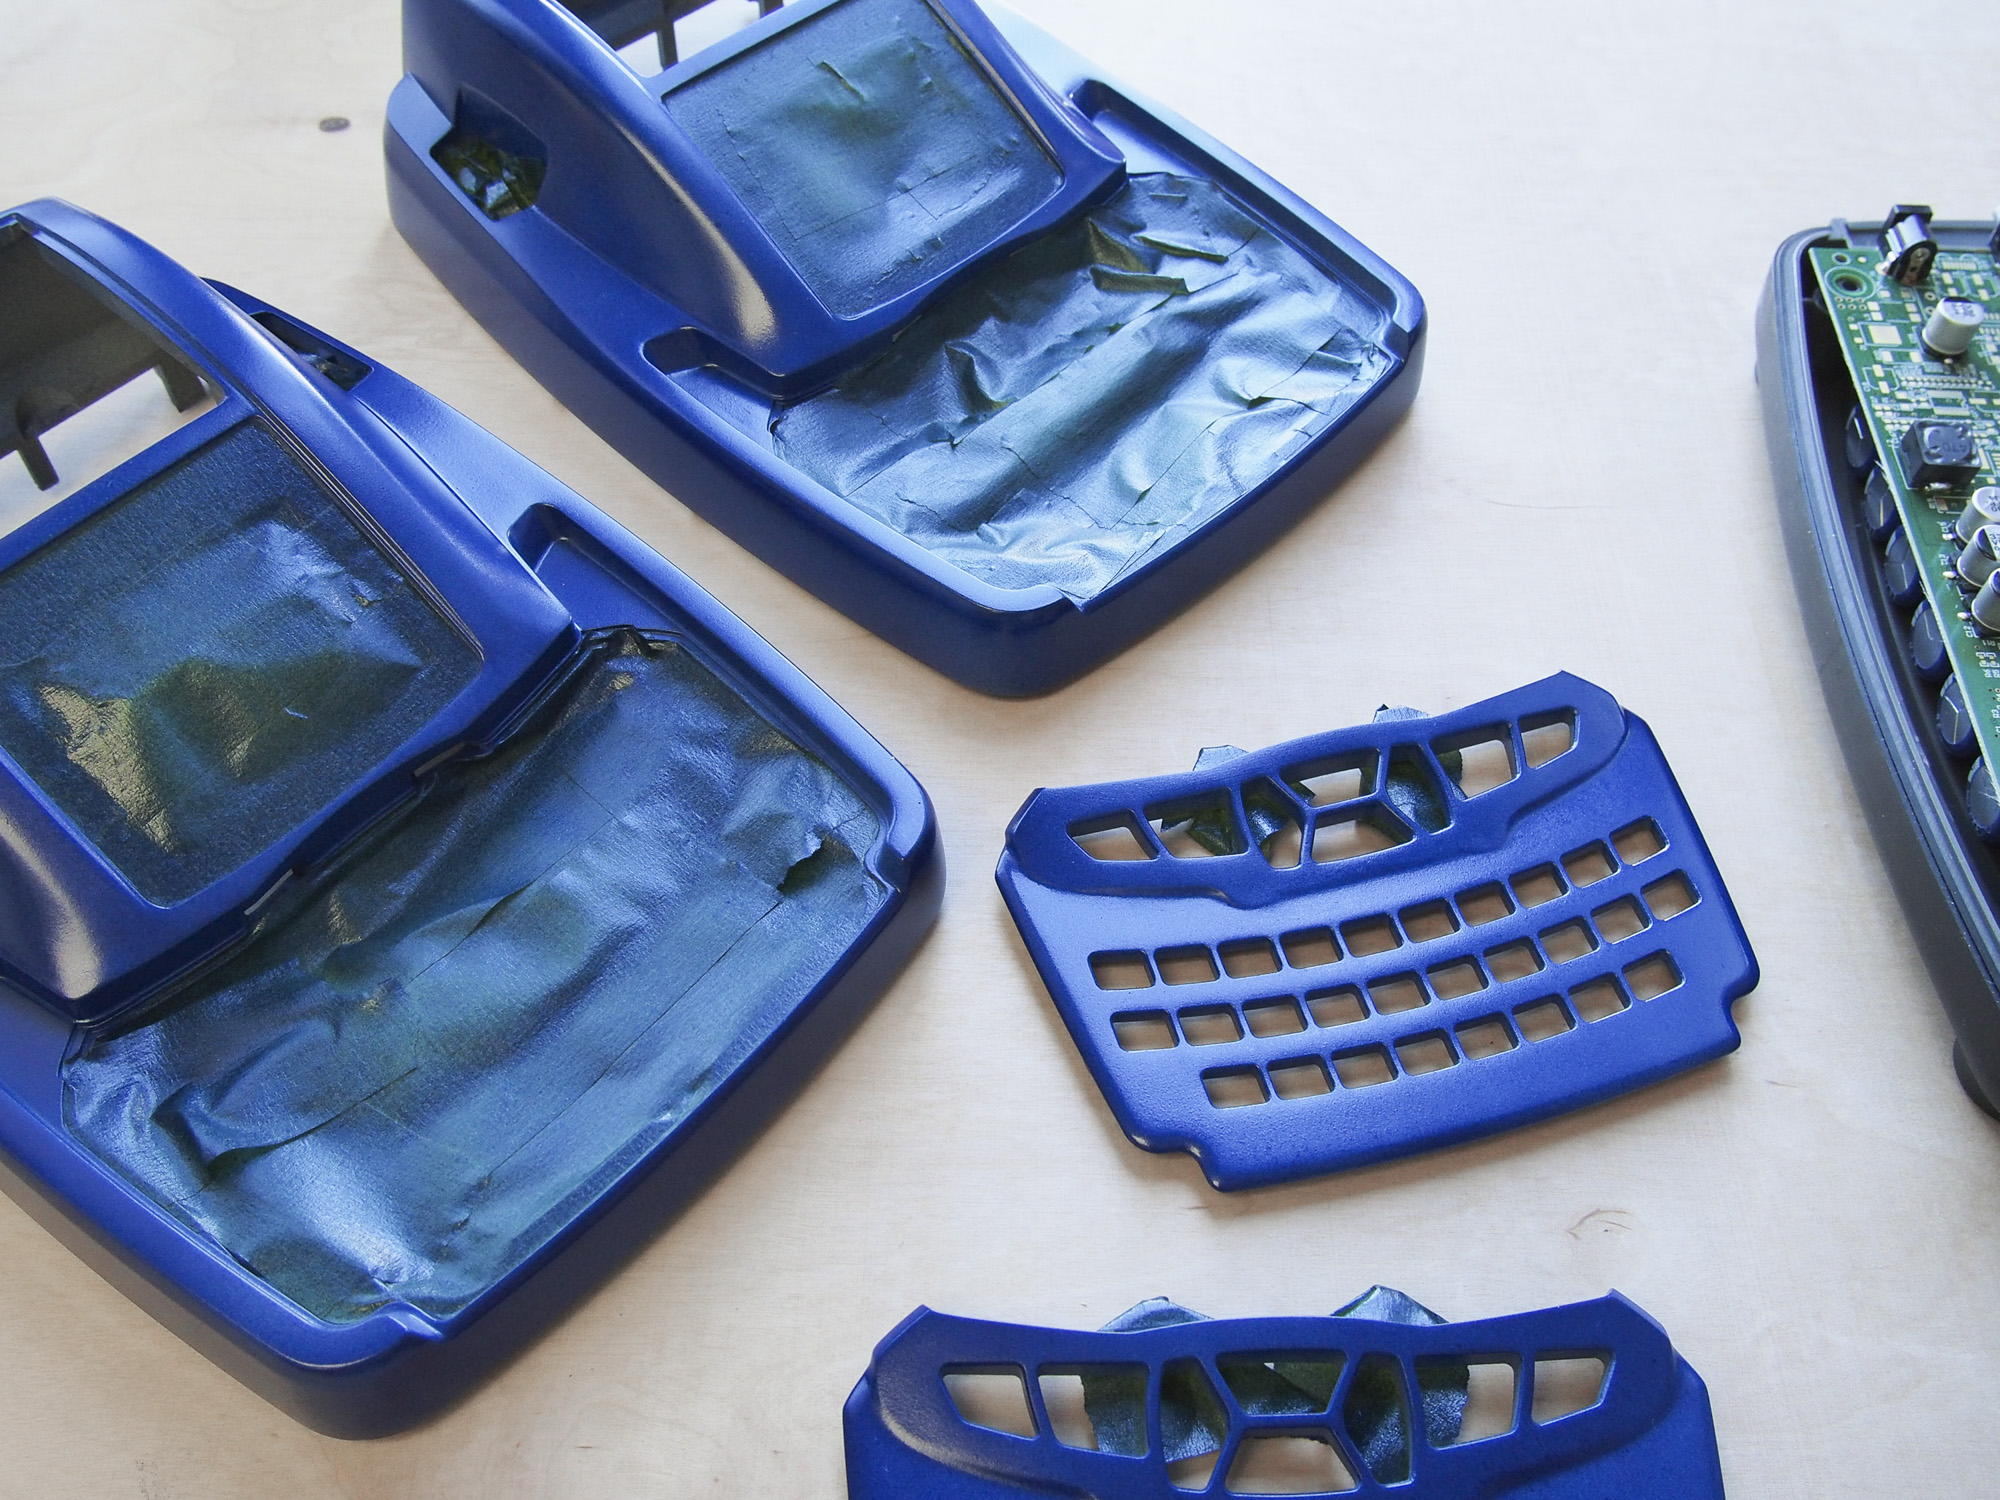 Various enclosure parts of the CADEX Spectro Rapid Battery Analyzer in blue.